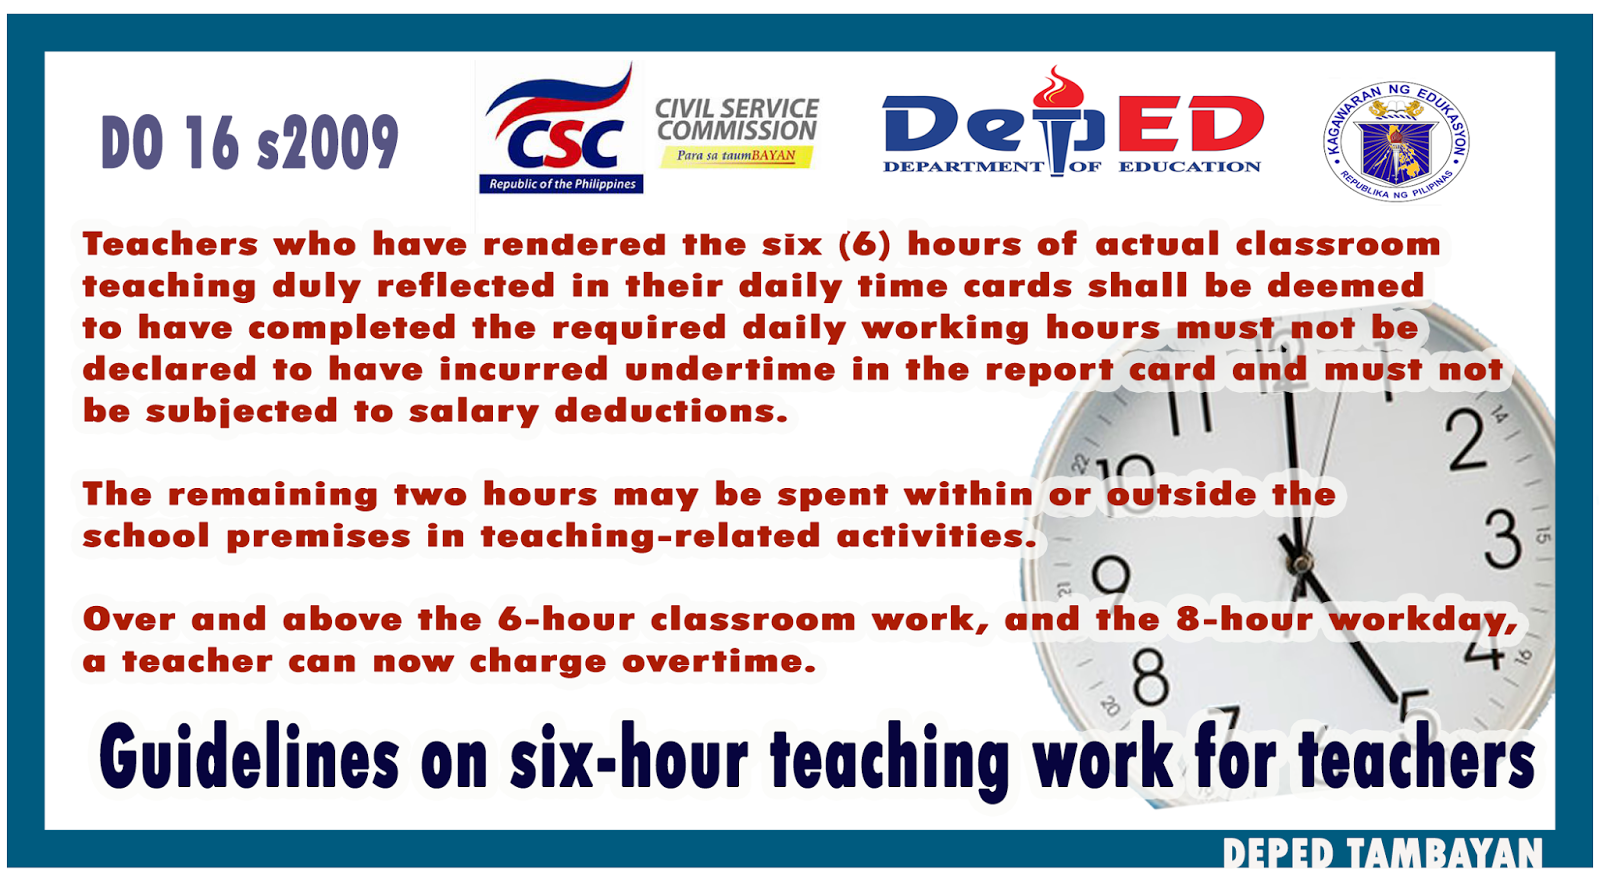 Teachers can now claim overtime pay | DEPED TAMBAYAN PH